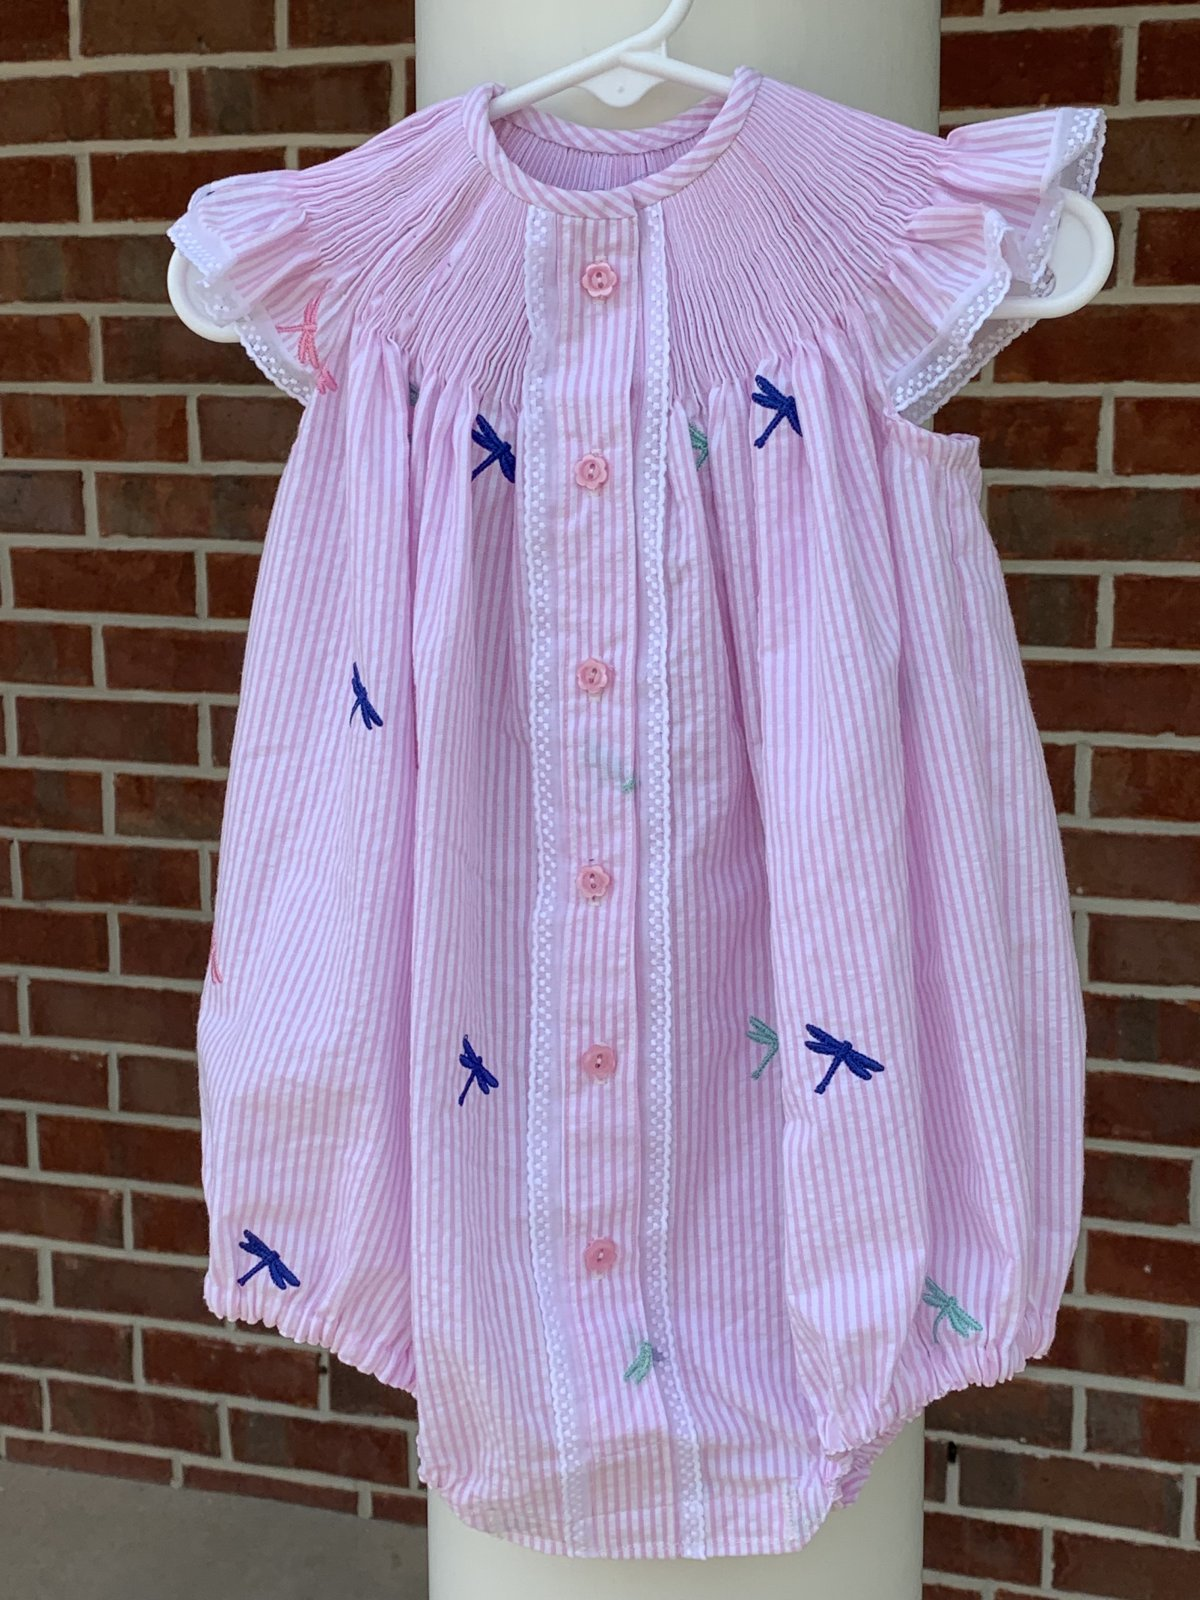 Ready to Smock - Bishop Bubble Embroidered Dragonflies on Pink Seersucker 18 mo